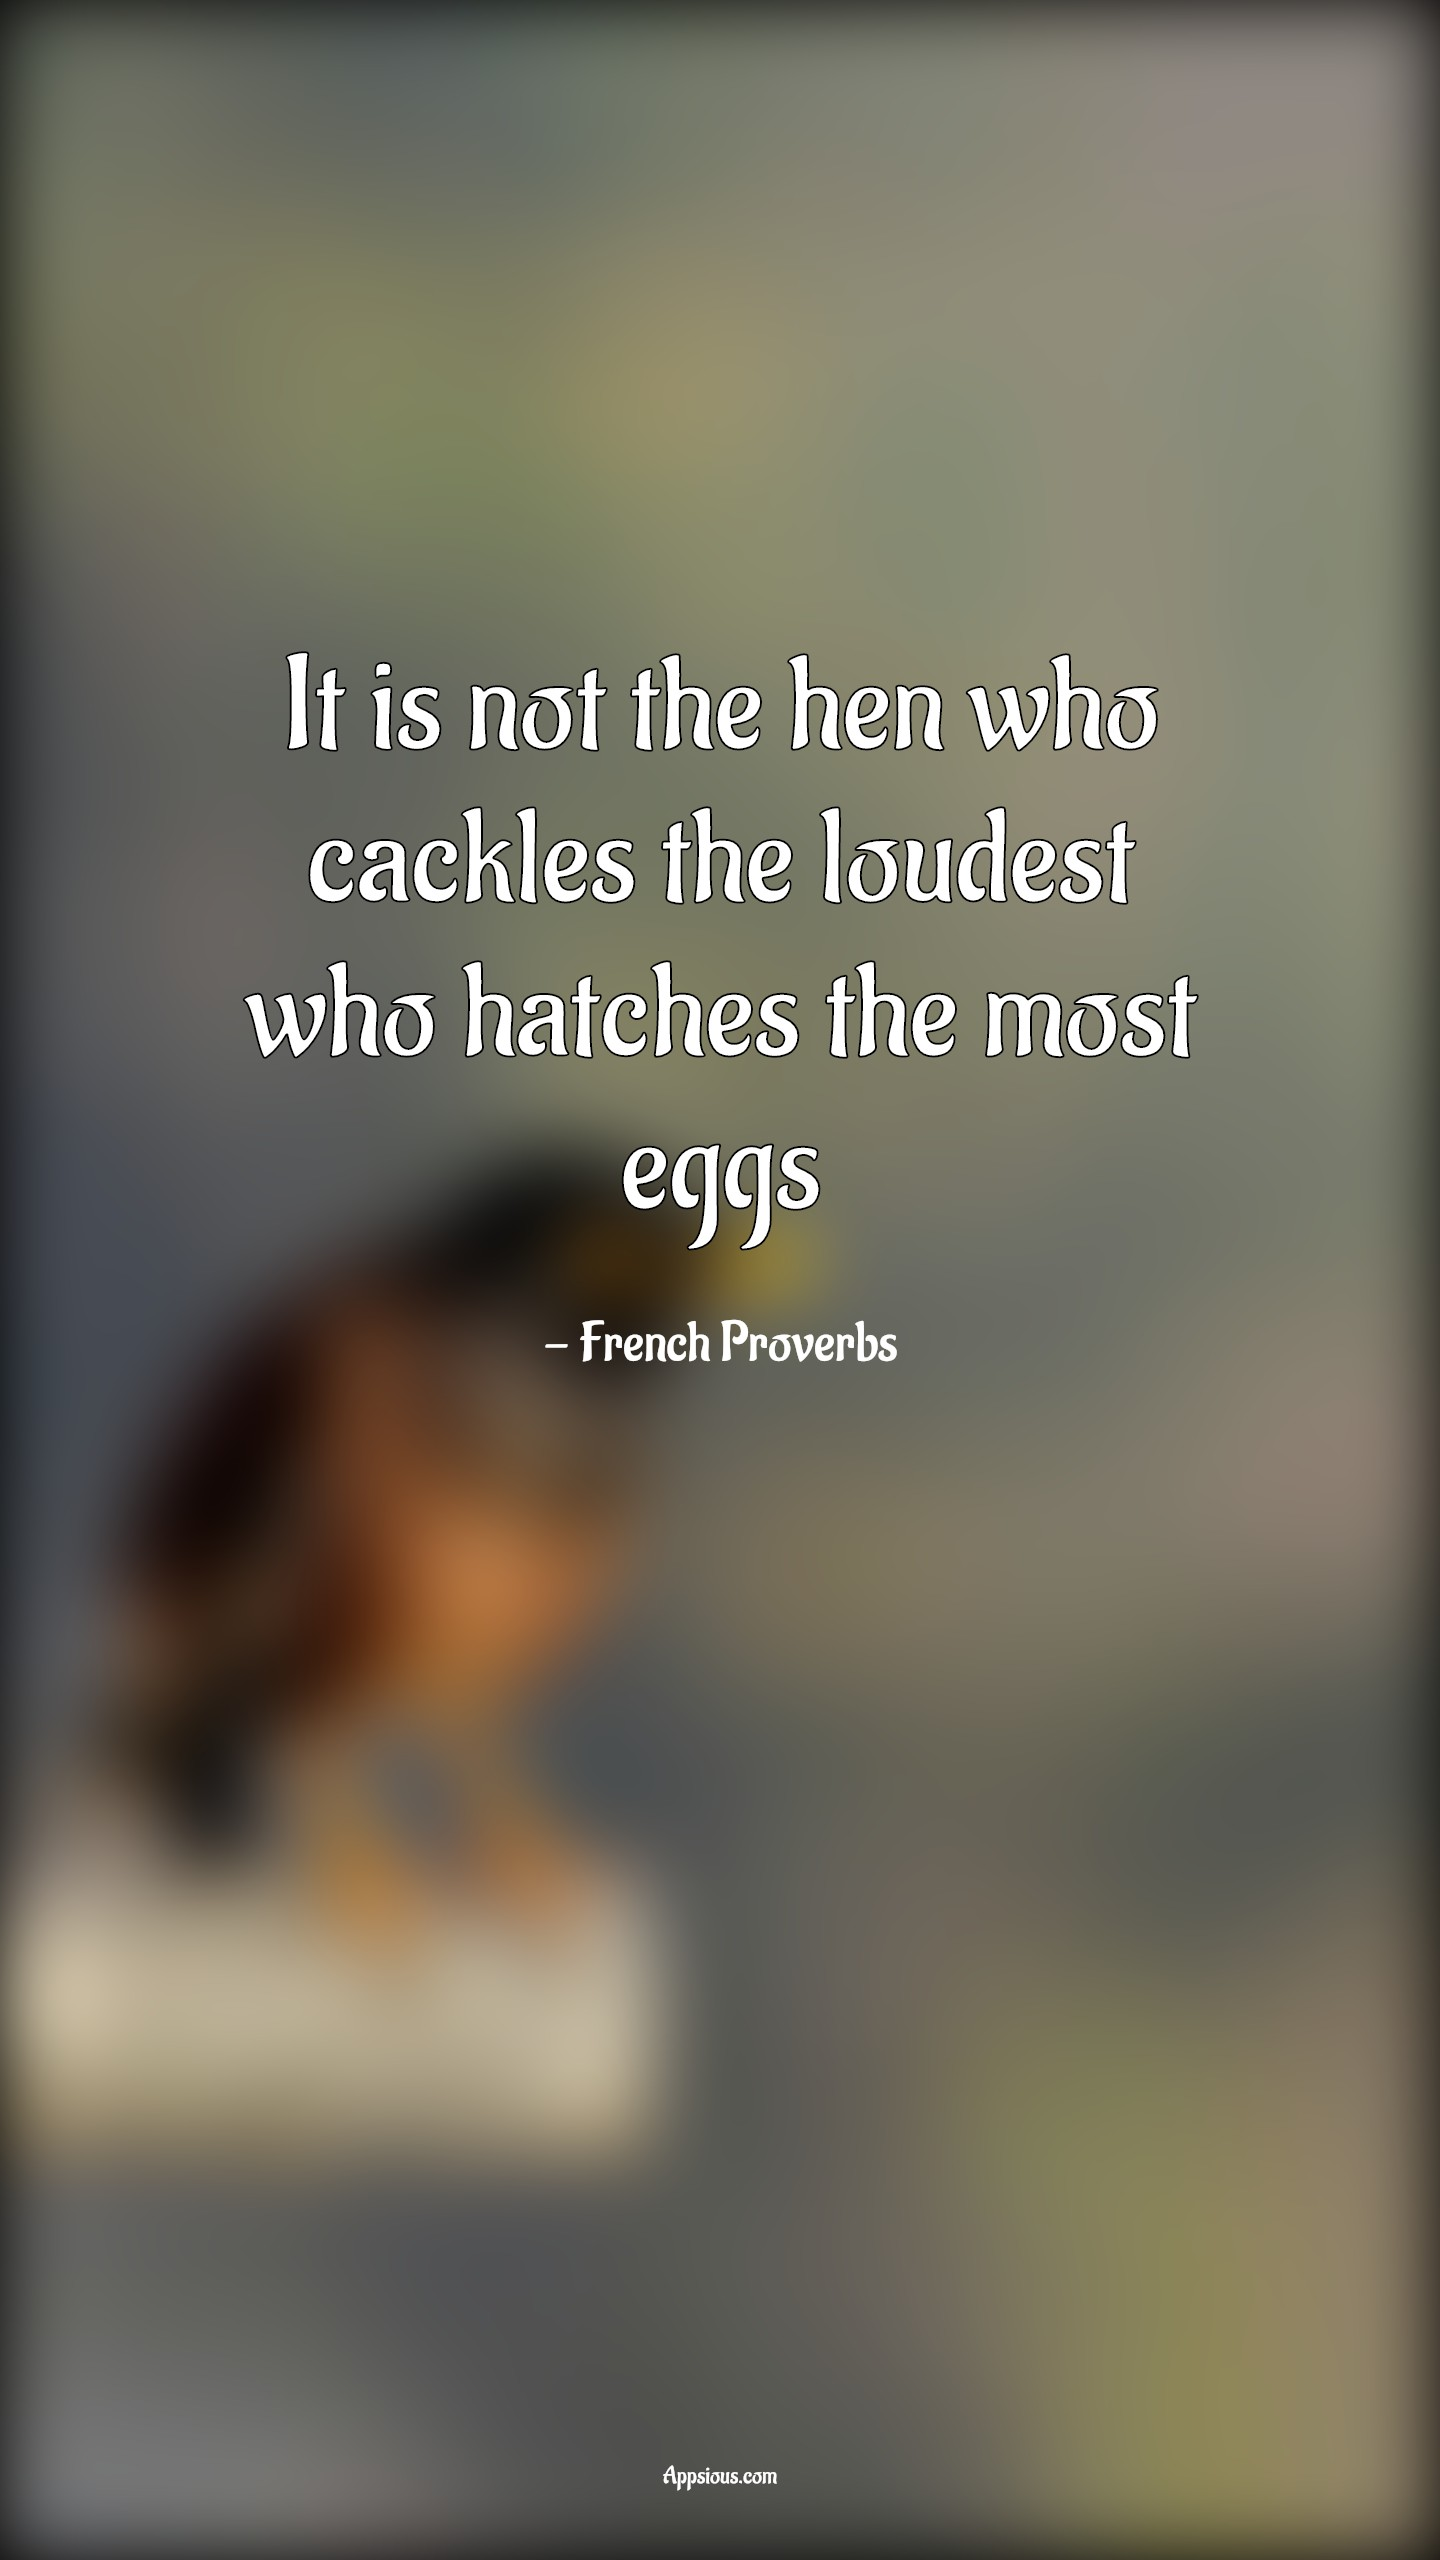 It is not the hen who cackles the loudest who hatches the most eggs